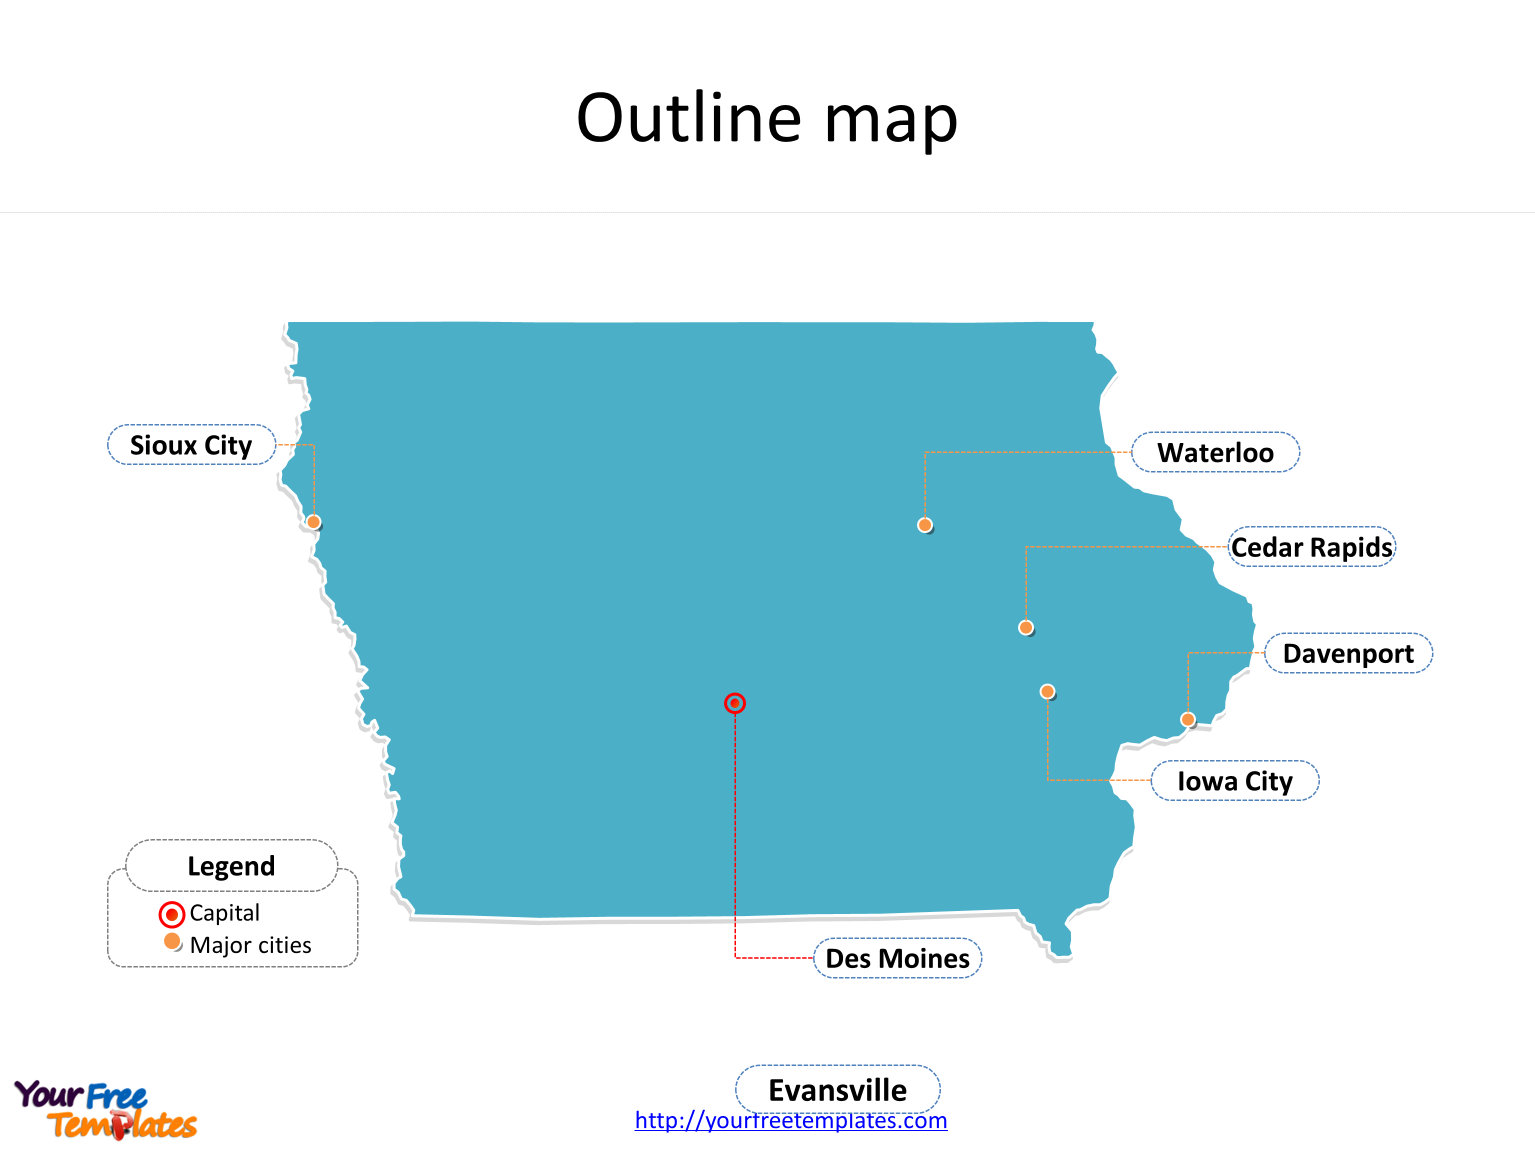 Iowa map free download free powerpoint templates state of iowa map with outline and cities labeled on the iowa maps free download gumiabroncs